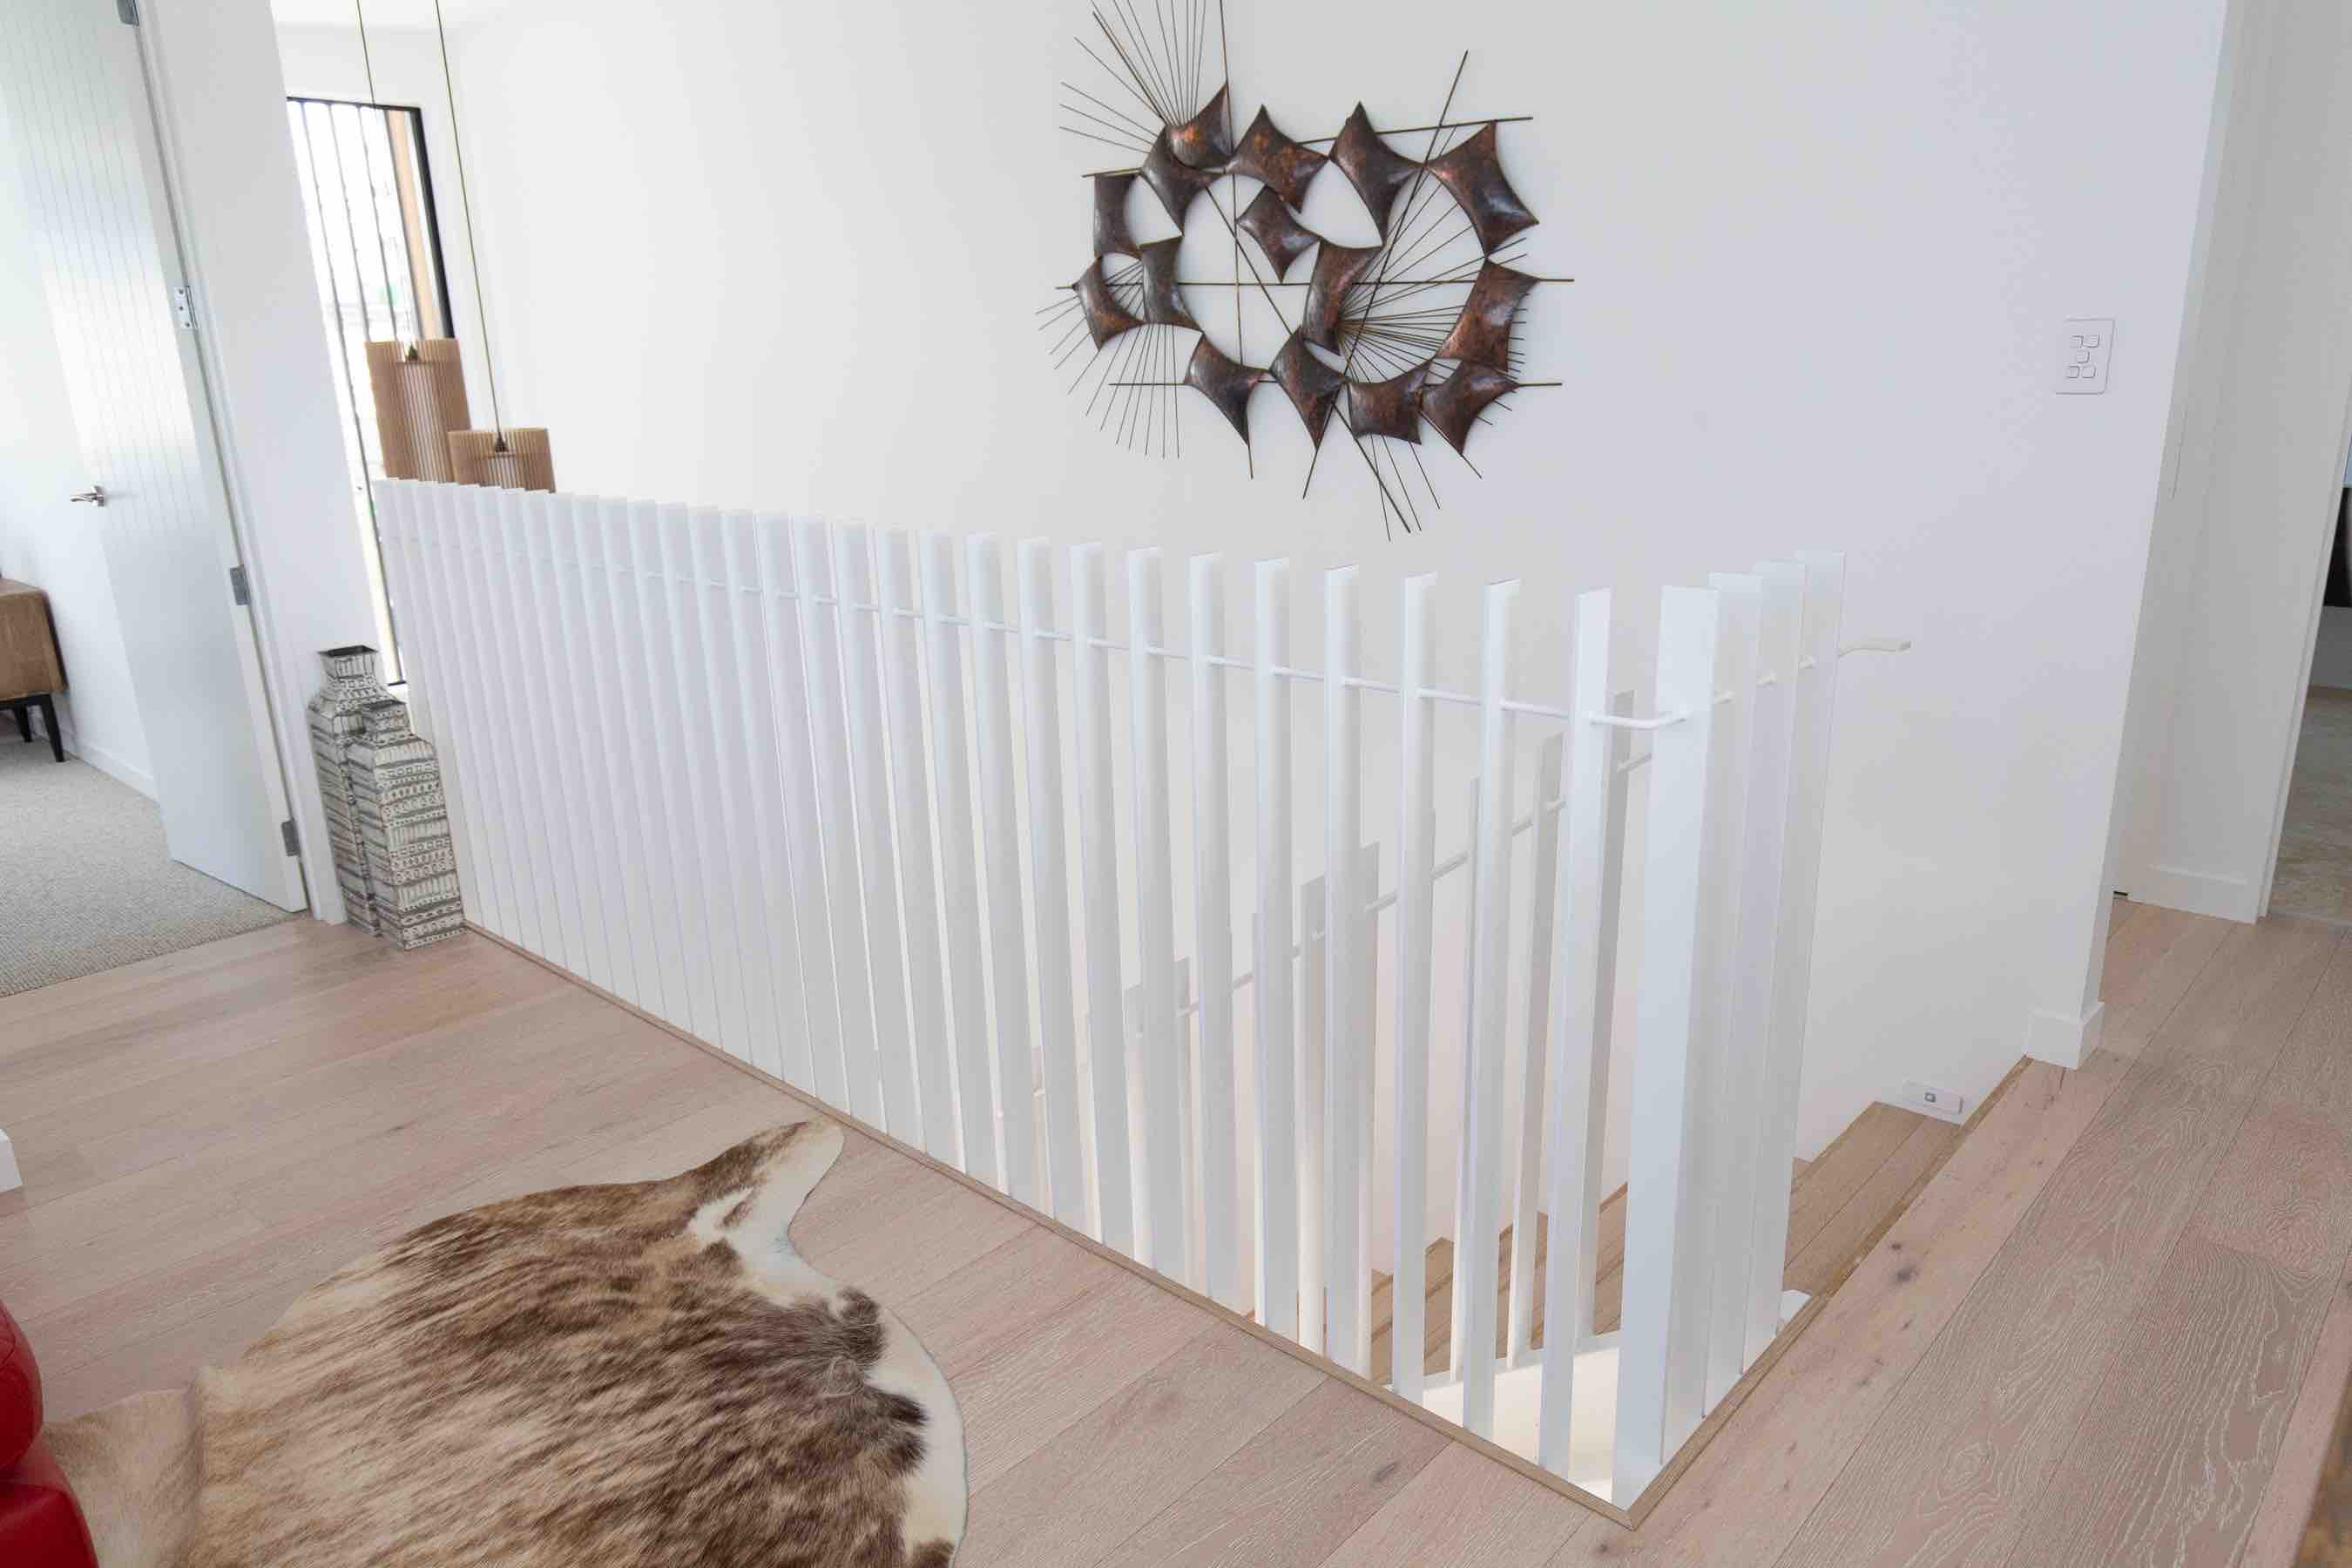 Clean metal balustrade design in this staircase renovation in Auckland, NZ